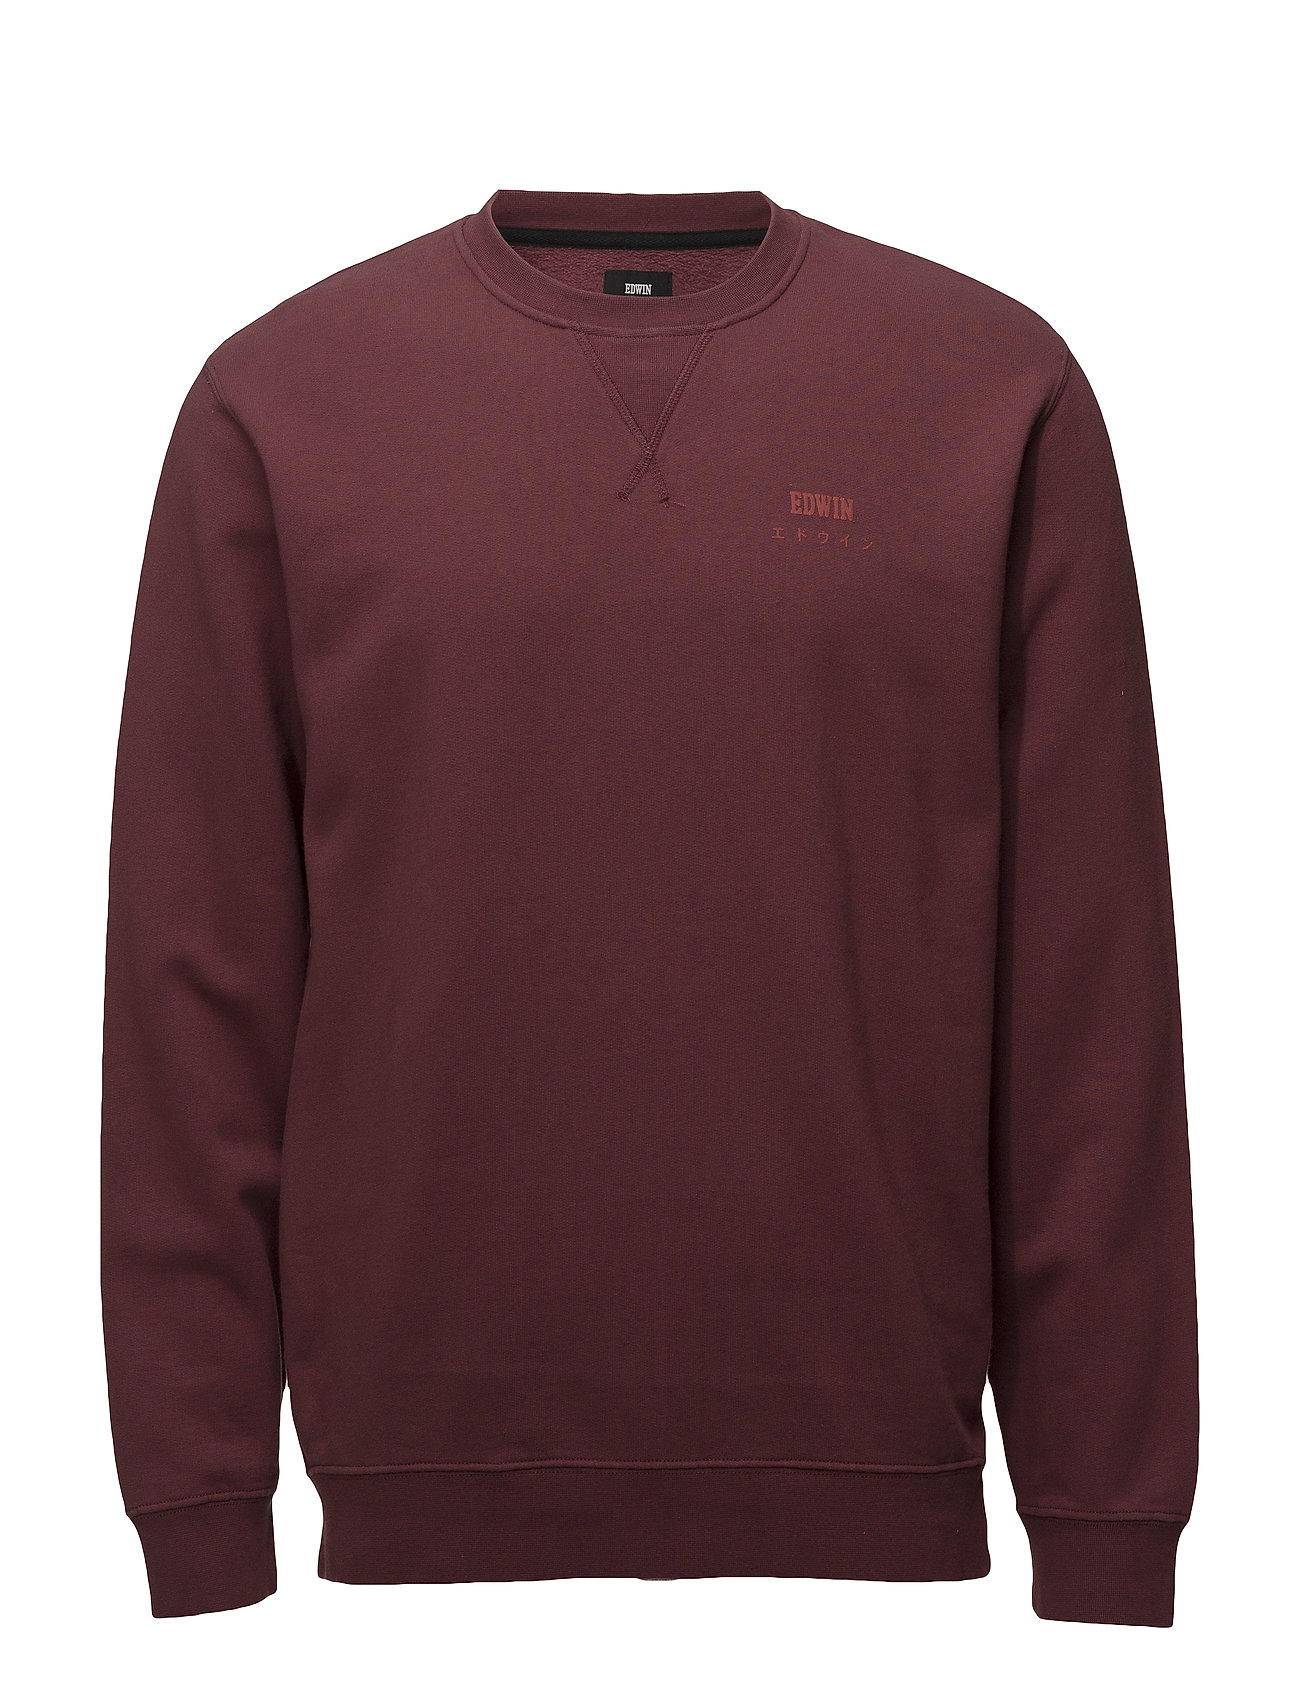 Image of Base Crew Sweat (3052620745)